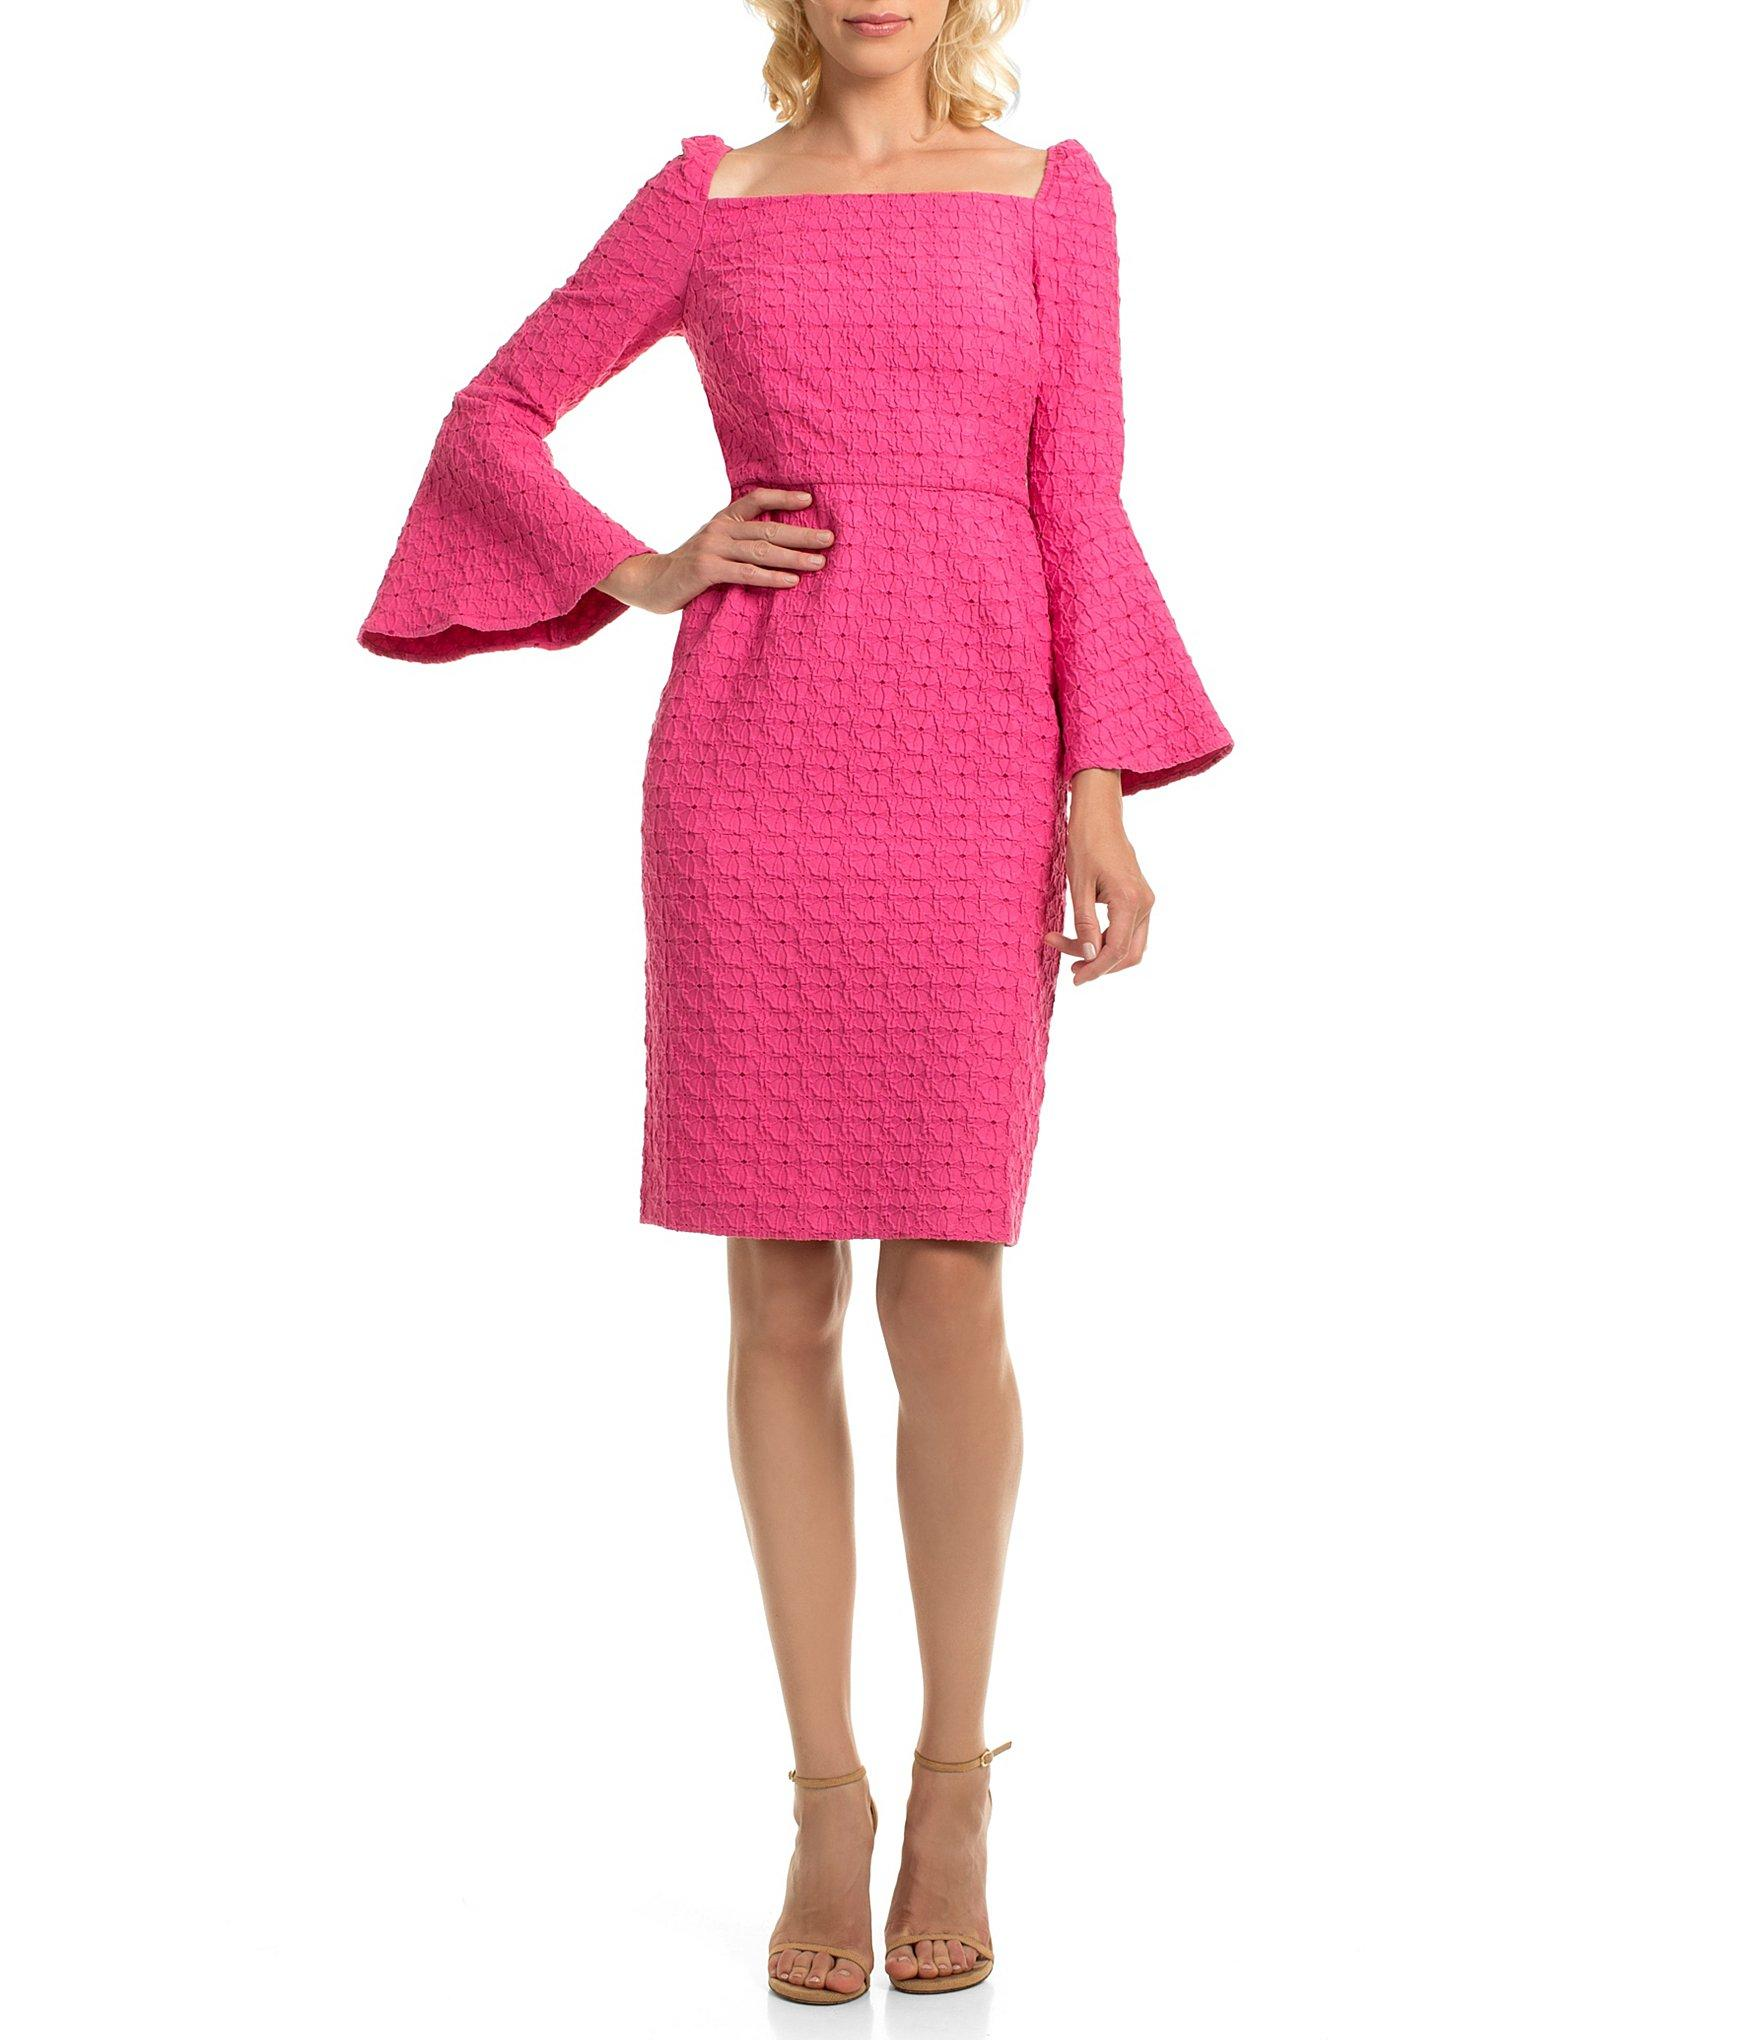 01b53f60 Trina Turk - Pink Trina Square Neck Bell Sleeve Sheath Dress - Lyst. View  fullscreen